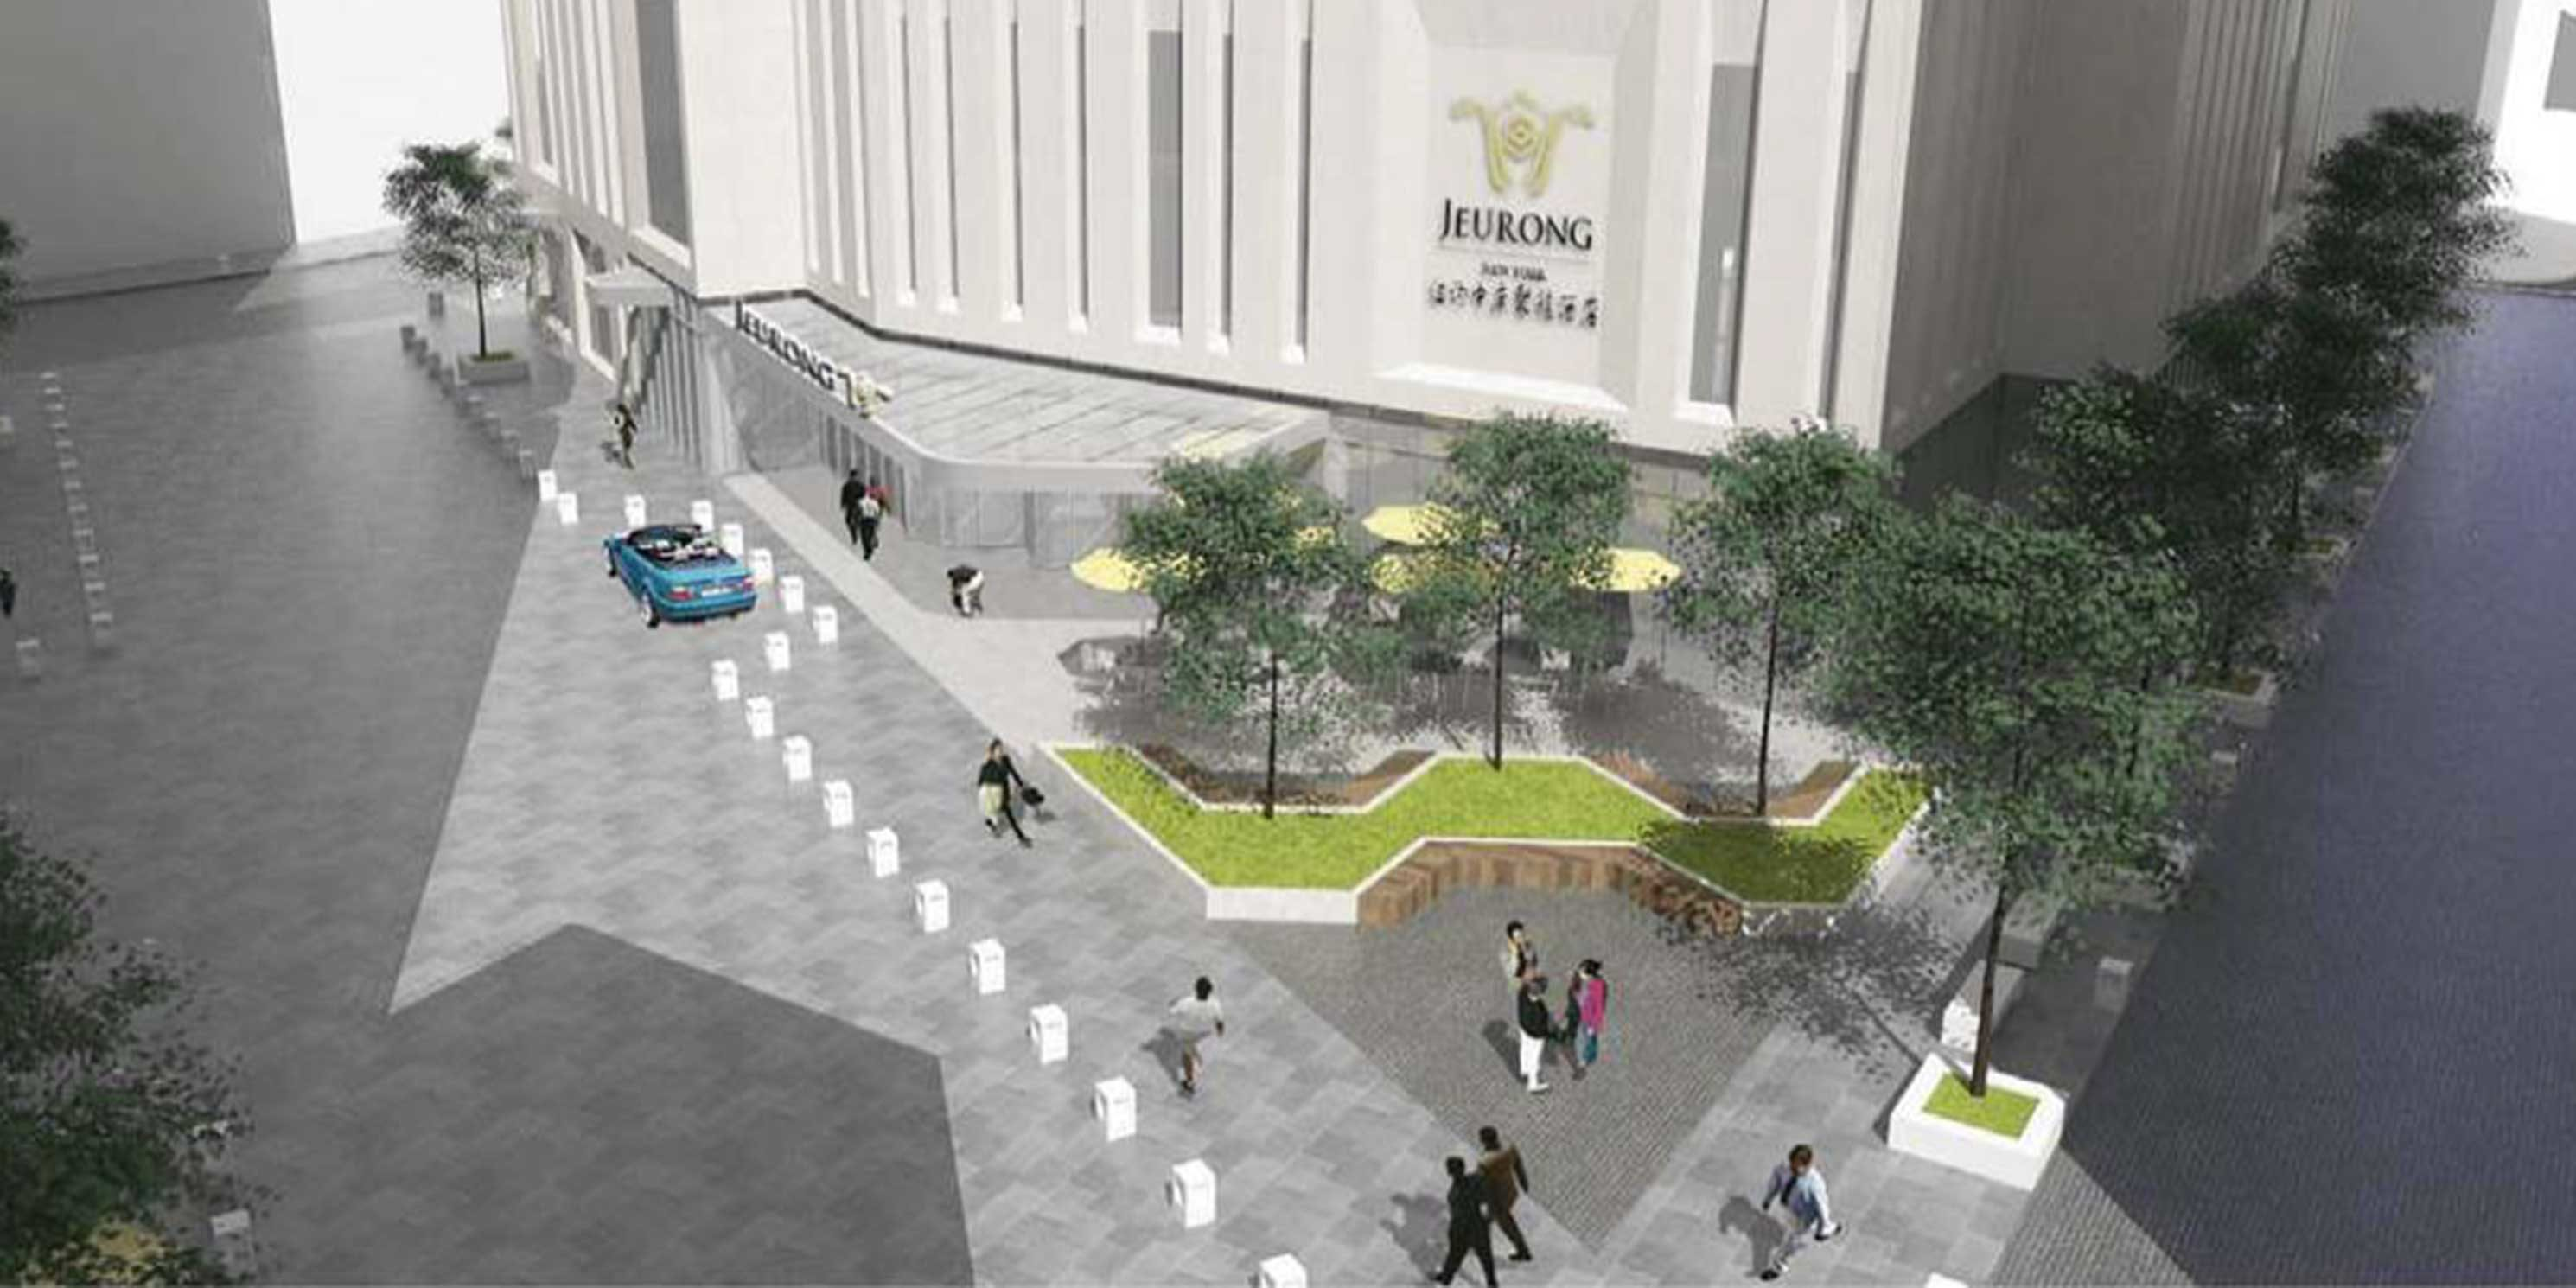 rendering of the public plaza in Flushing, Queens